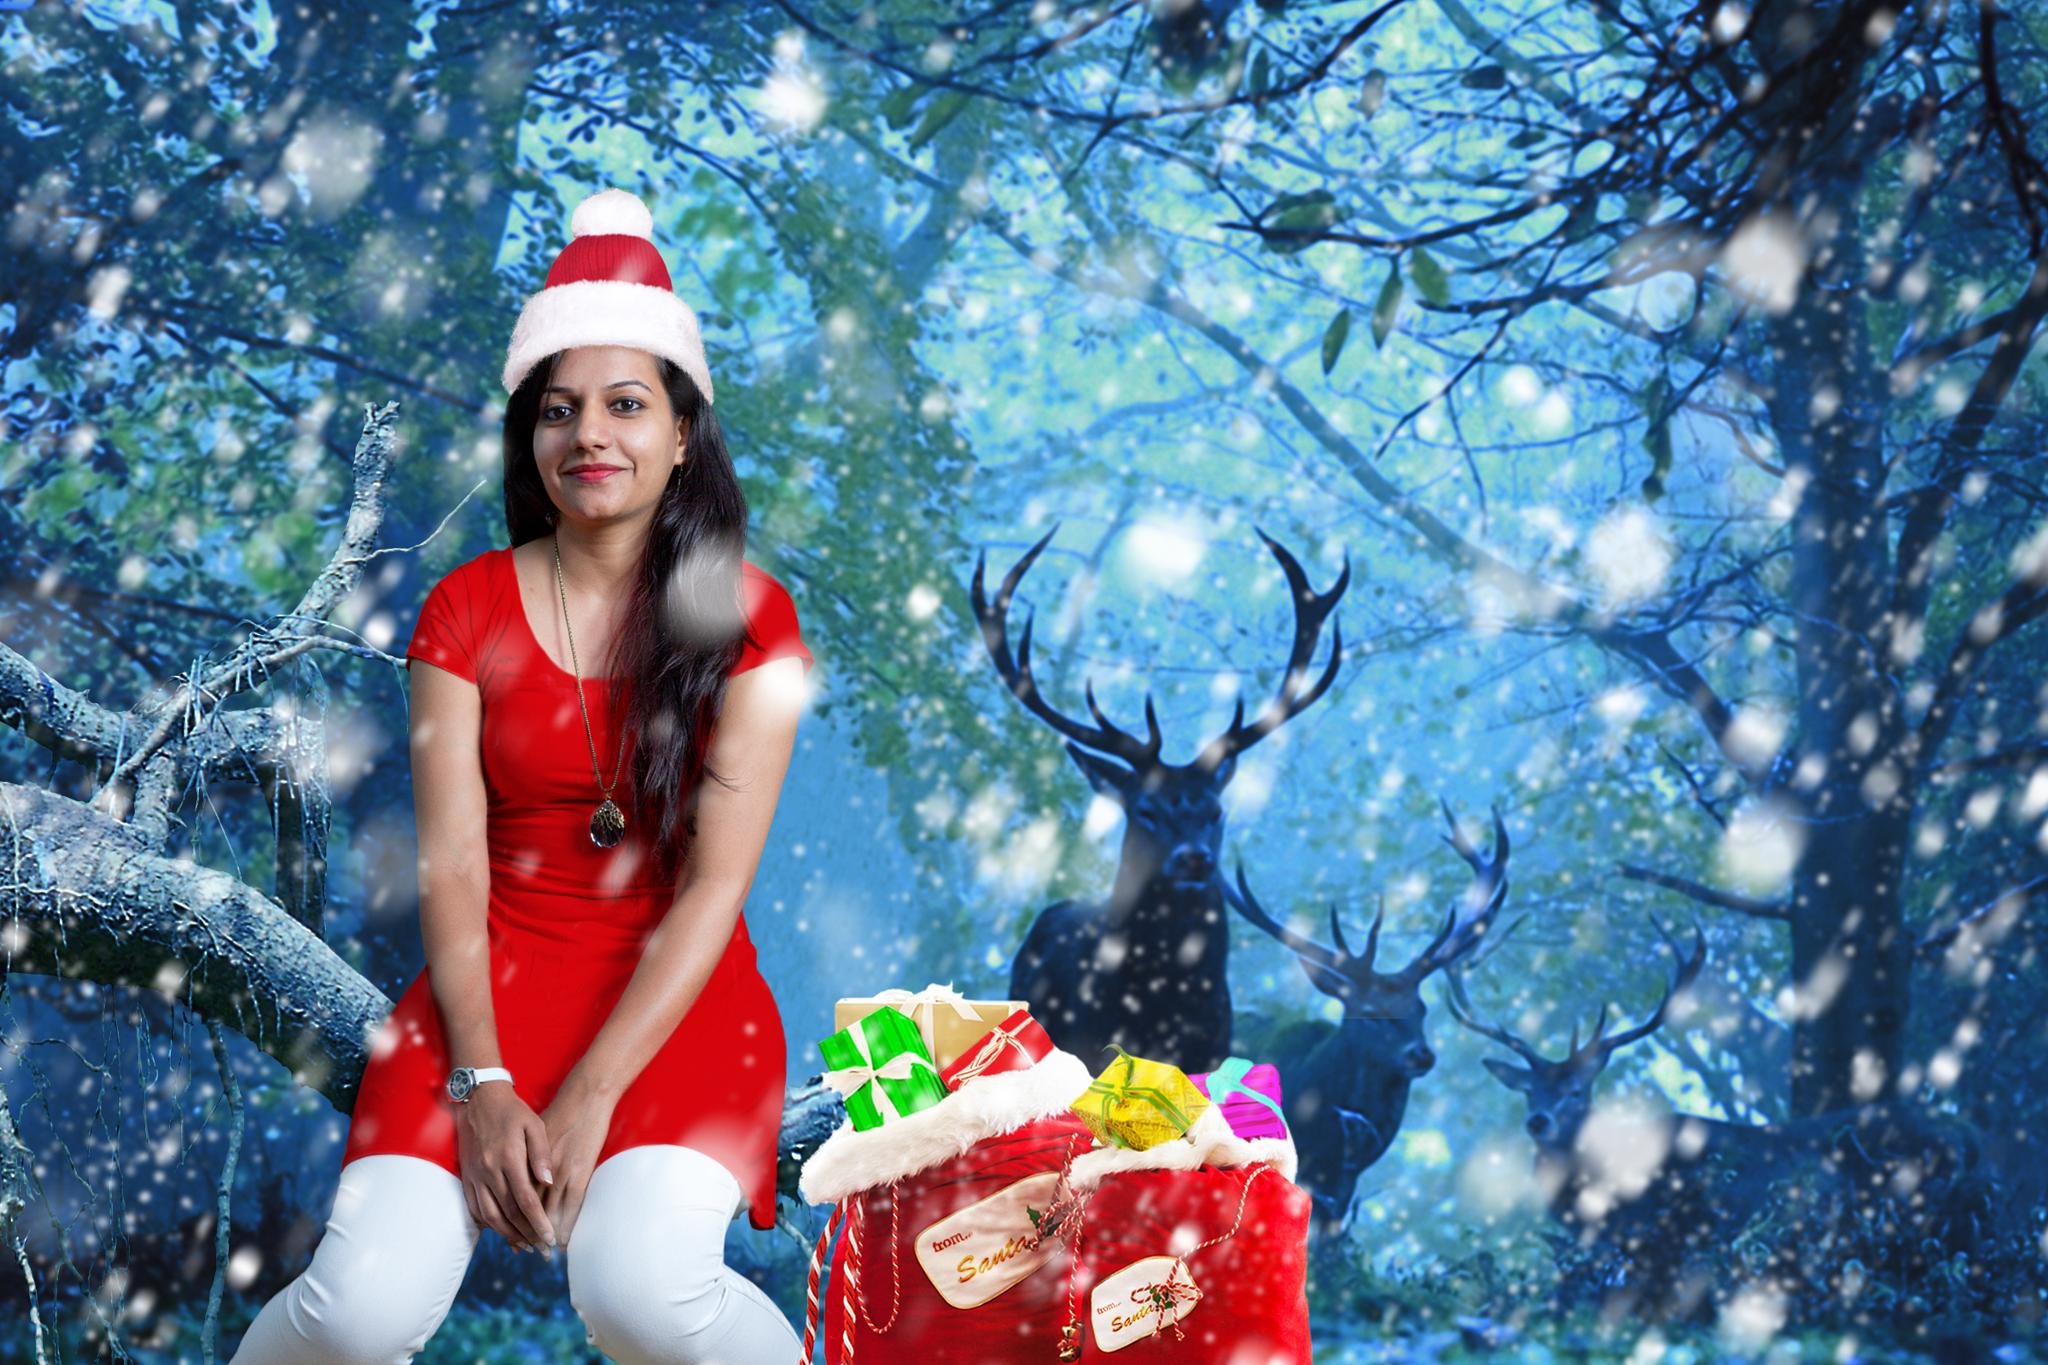 Season's Greetings - Merry Christmas and a Happy New Year to all My followers and Youpic Lovers :-) by Prem Swarup